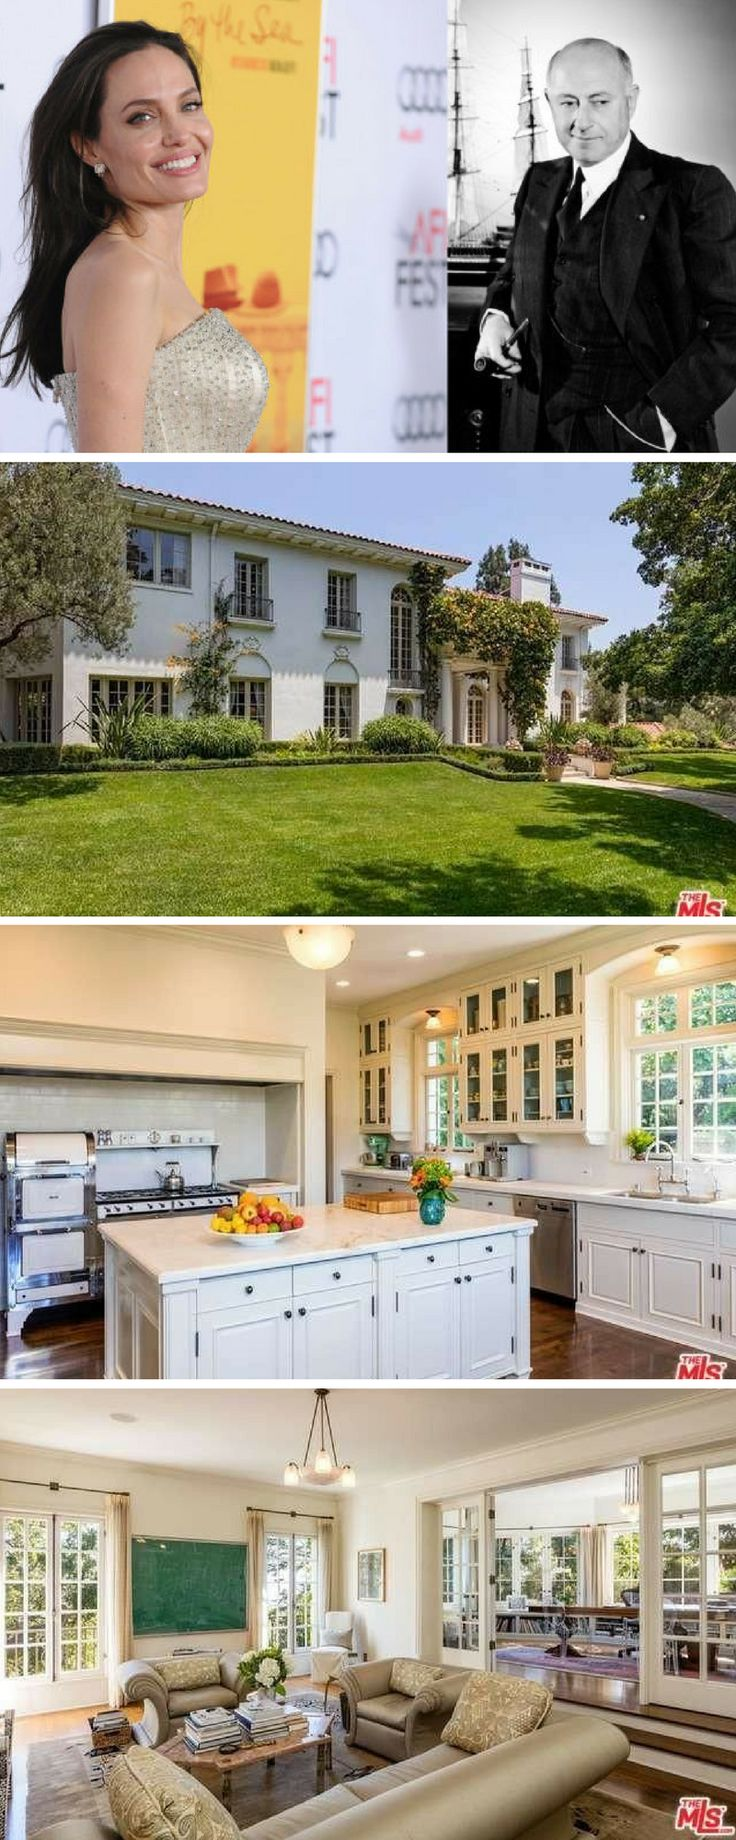 It appears Angelina Jolie isn't straying far from the Hollywood-area home she shared with Brad Pitt. Vanity Fair and other sources report she's entered into escrow on a $25 million Los Feliz estate once belonging to iconic director Cecil B. DeMille.